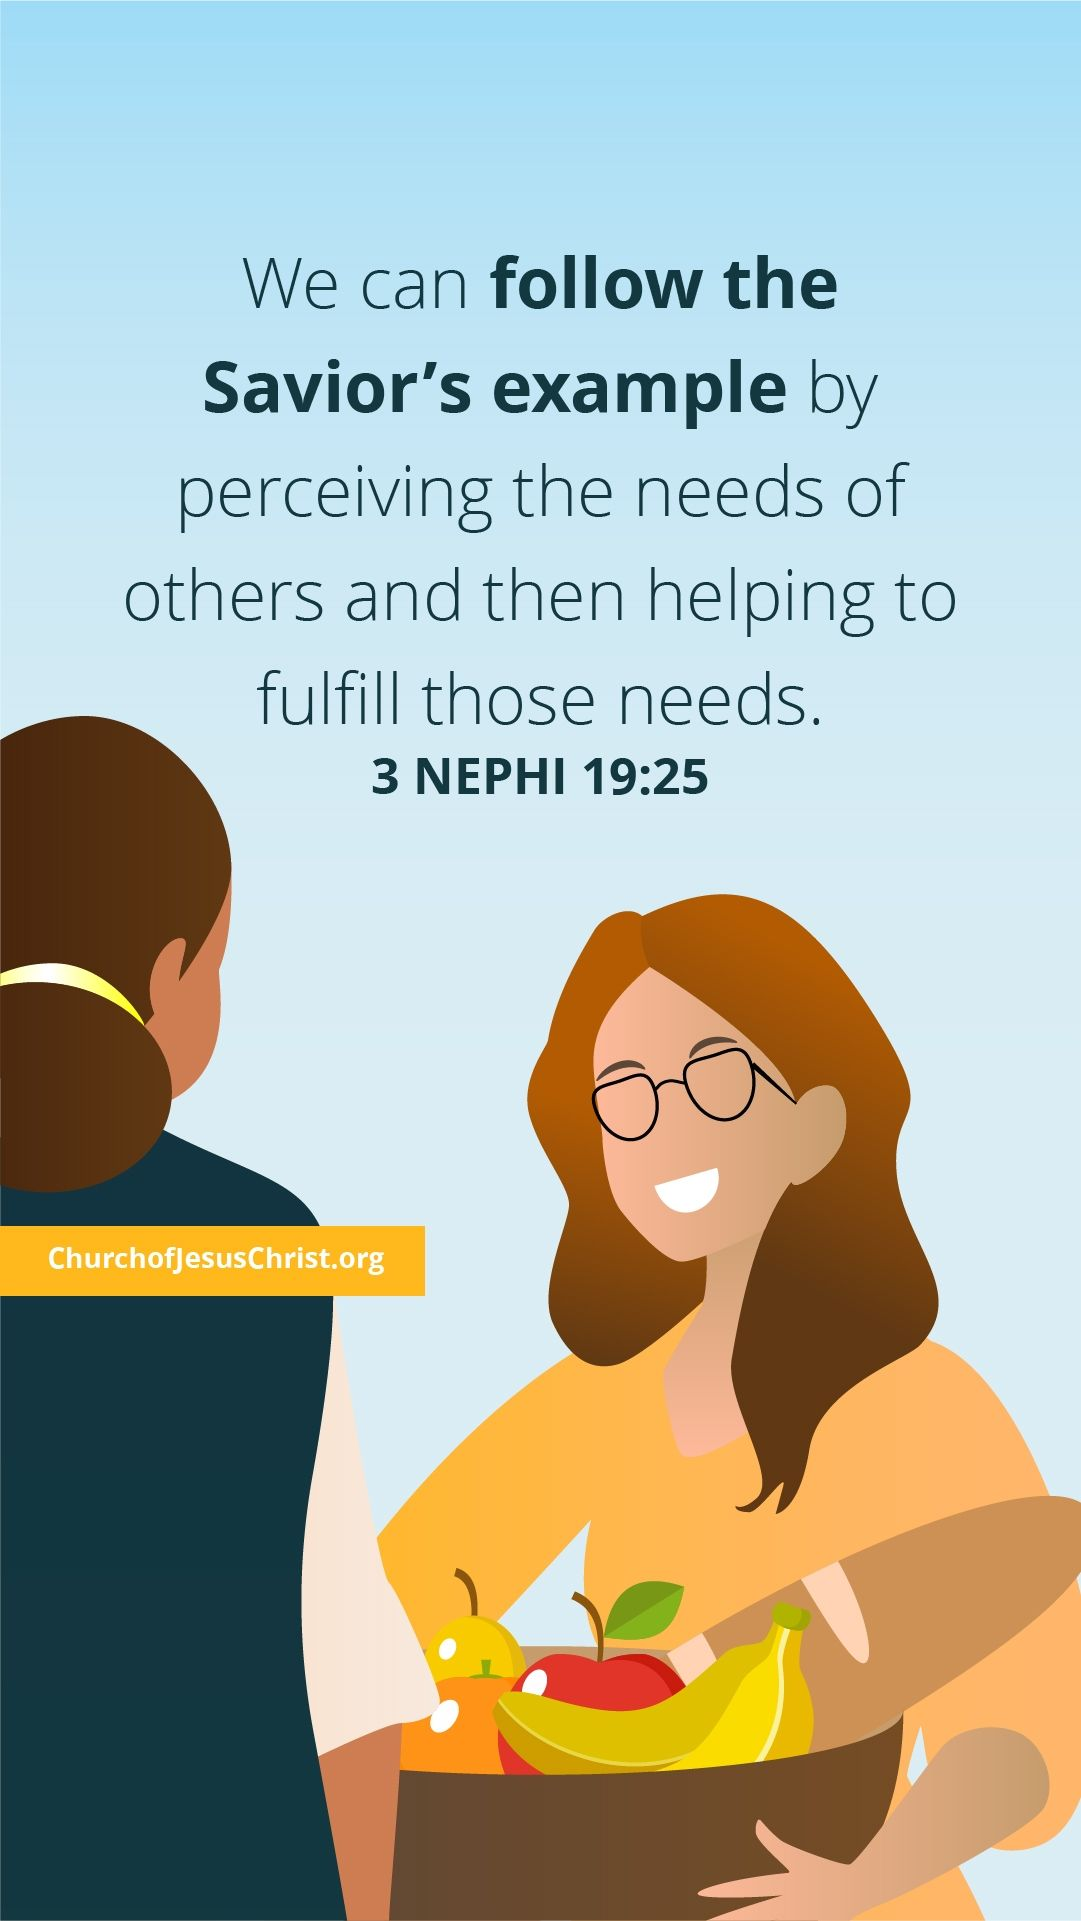 We can follow the Savior's example by perceiving the needs of others and then helping to fulfill those needs. — See 3Nephi 19:25.